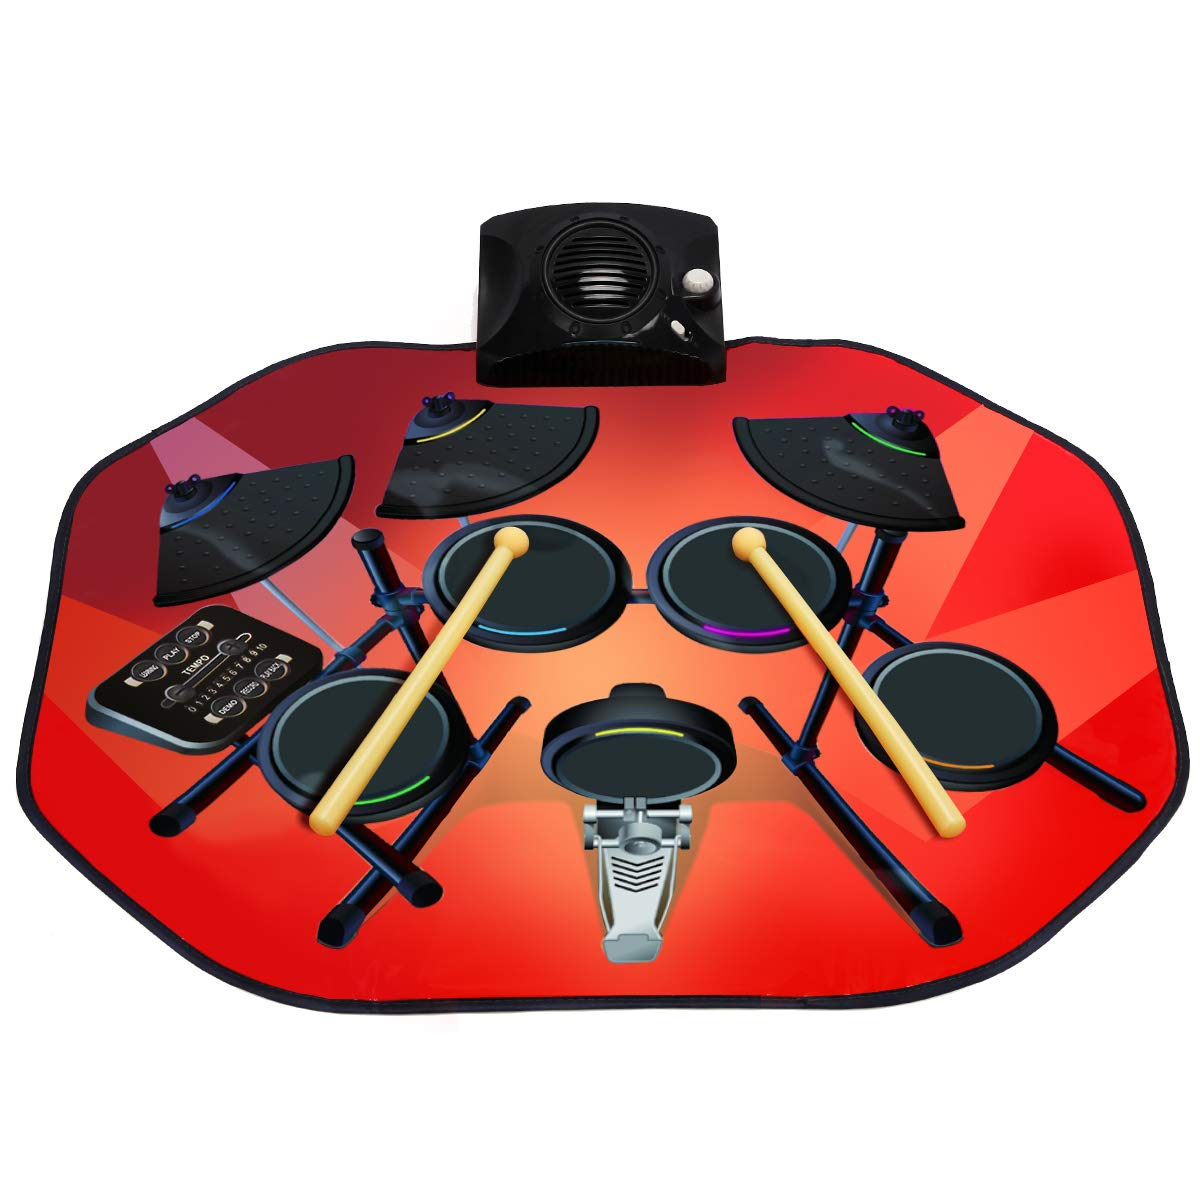 Costzon Electronic Drum Mat, 8 Keys Glowing Music Mat with LED Lights,MP3 Cable, Drumsticks, Support Play - Study-Record - Playback - Demo 5 Modes, Volume Control by Costzon (Image #1)